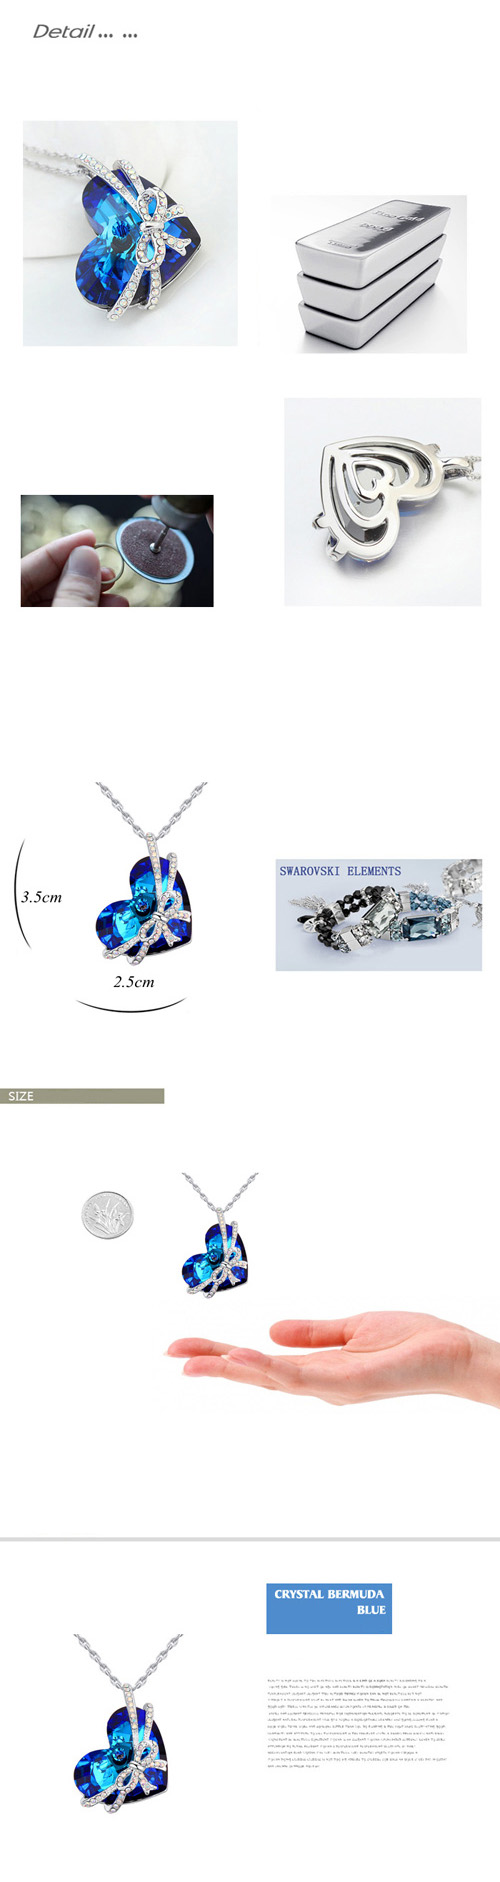 8308b5bfe8cdf0 Famous Heart of the Ocean Blue Stone Pendant Bijoux Necklace Made with  Crystals